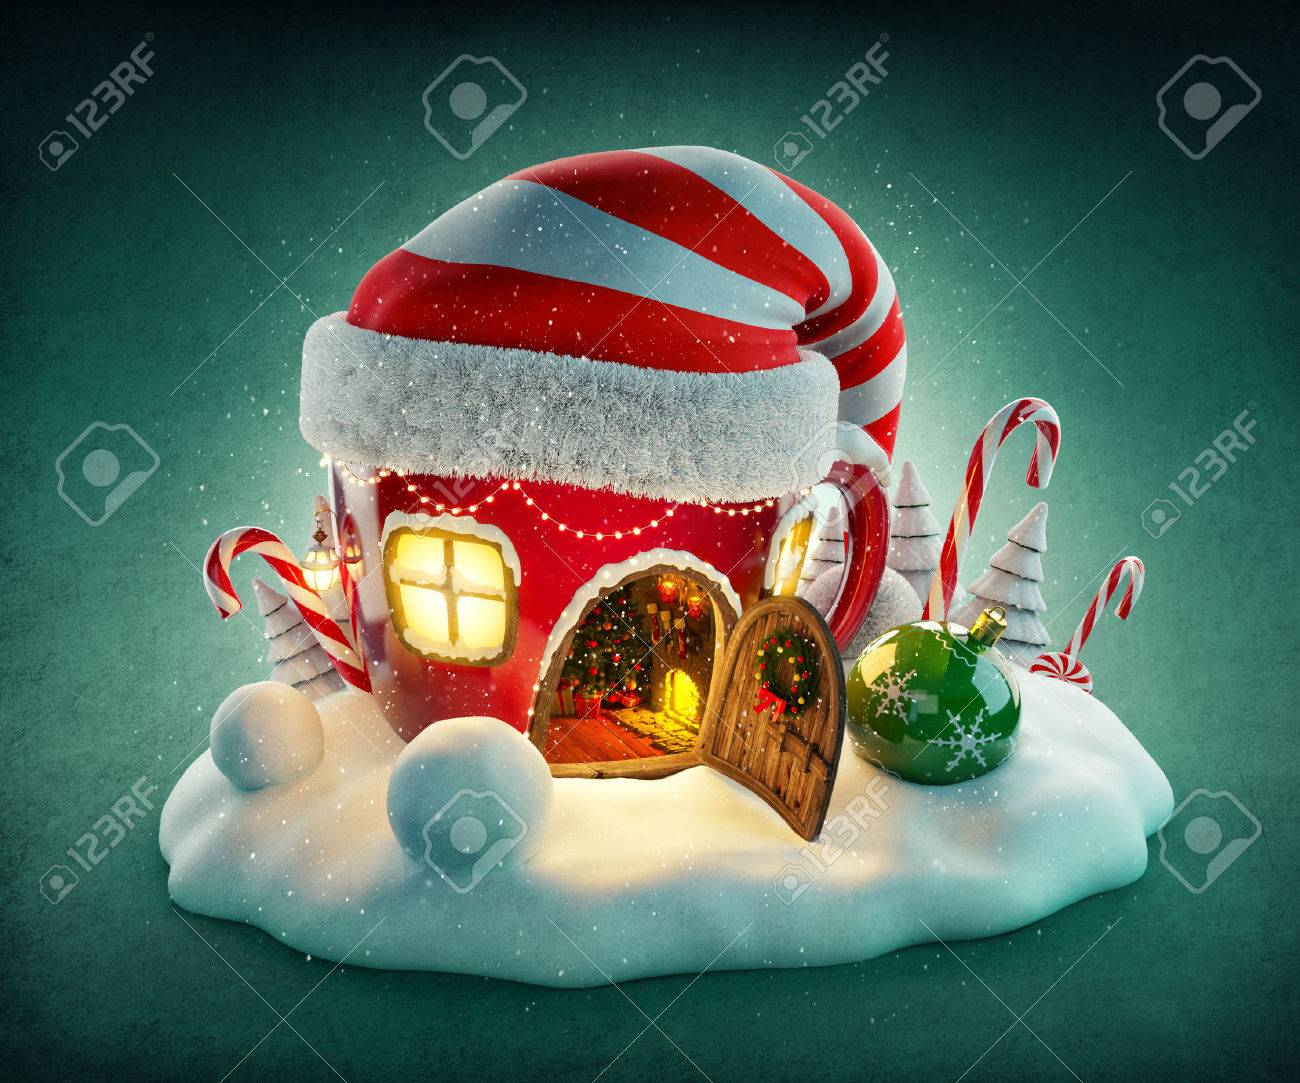 Amazing fairy house in elfs hat decorated at christmas in shape of tea cup with opened door and fireplace inside. Unusual christmas illustration. Stock Illustration - 46799225